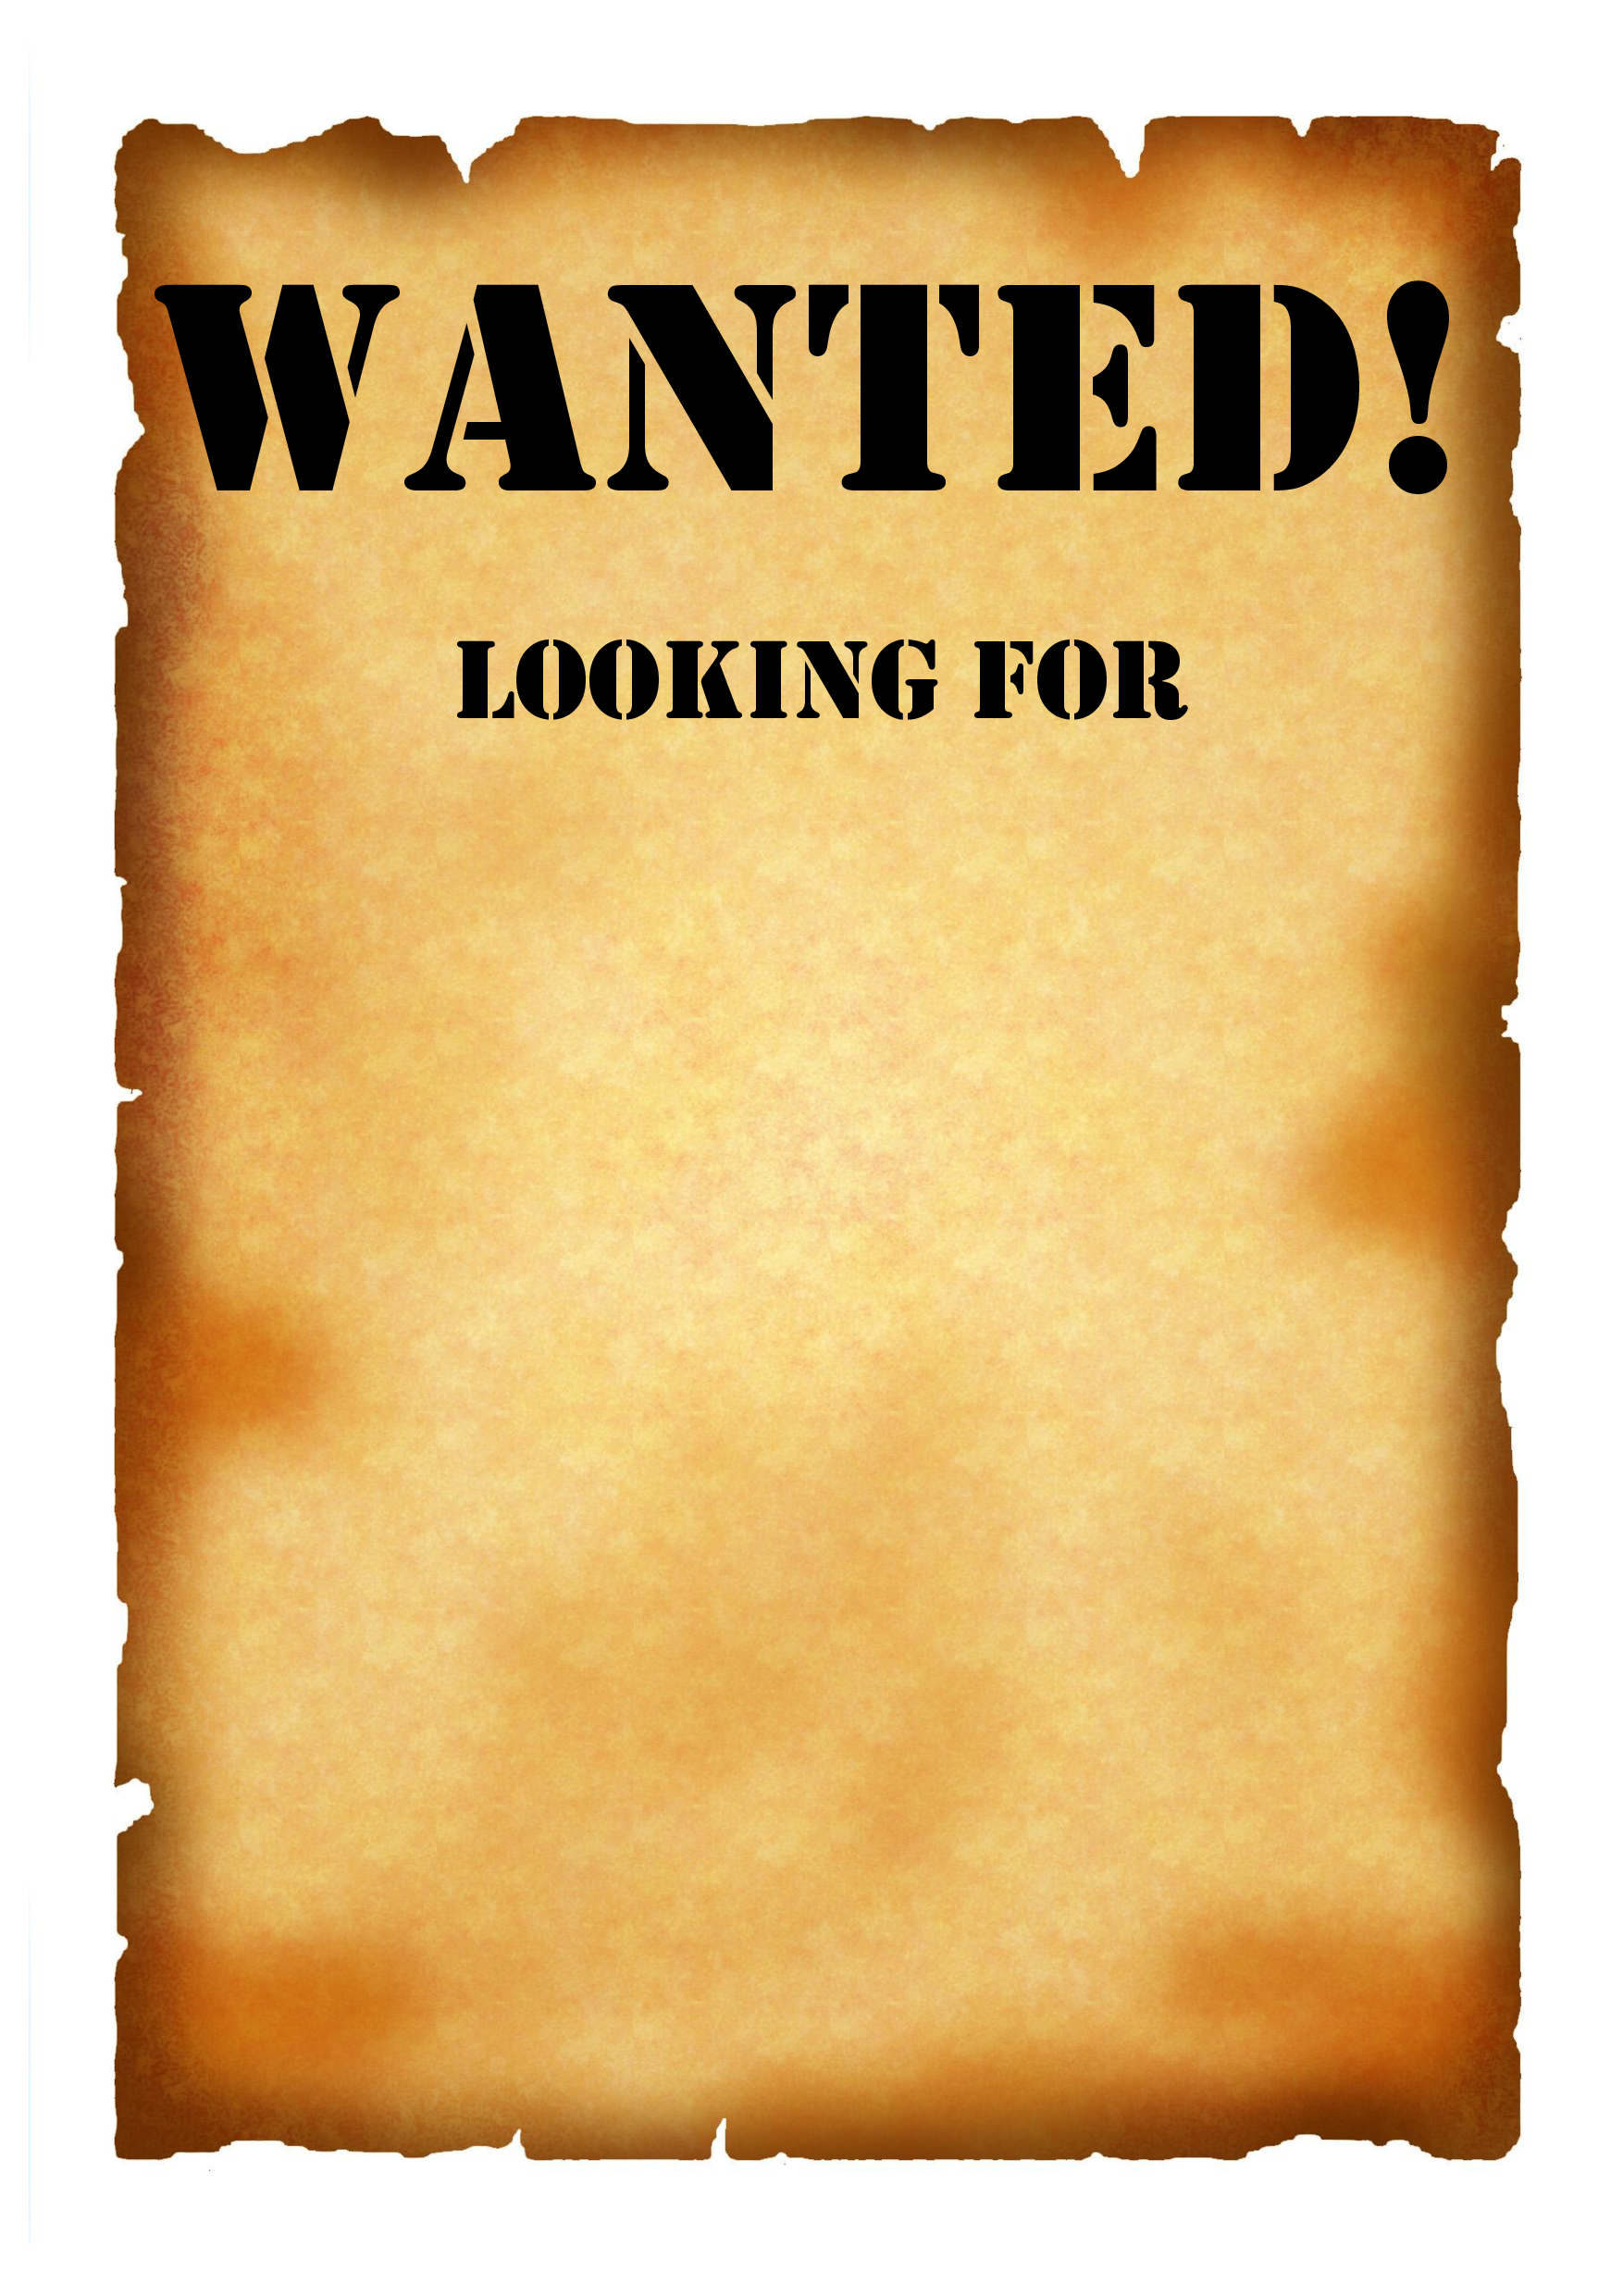 Wanted Poster Template 2 By Lizzy2008 Blank Template Wanted Poster 1754x2481 Download Hd Wallpaper Wallpapertip